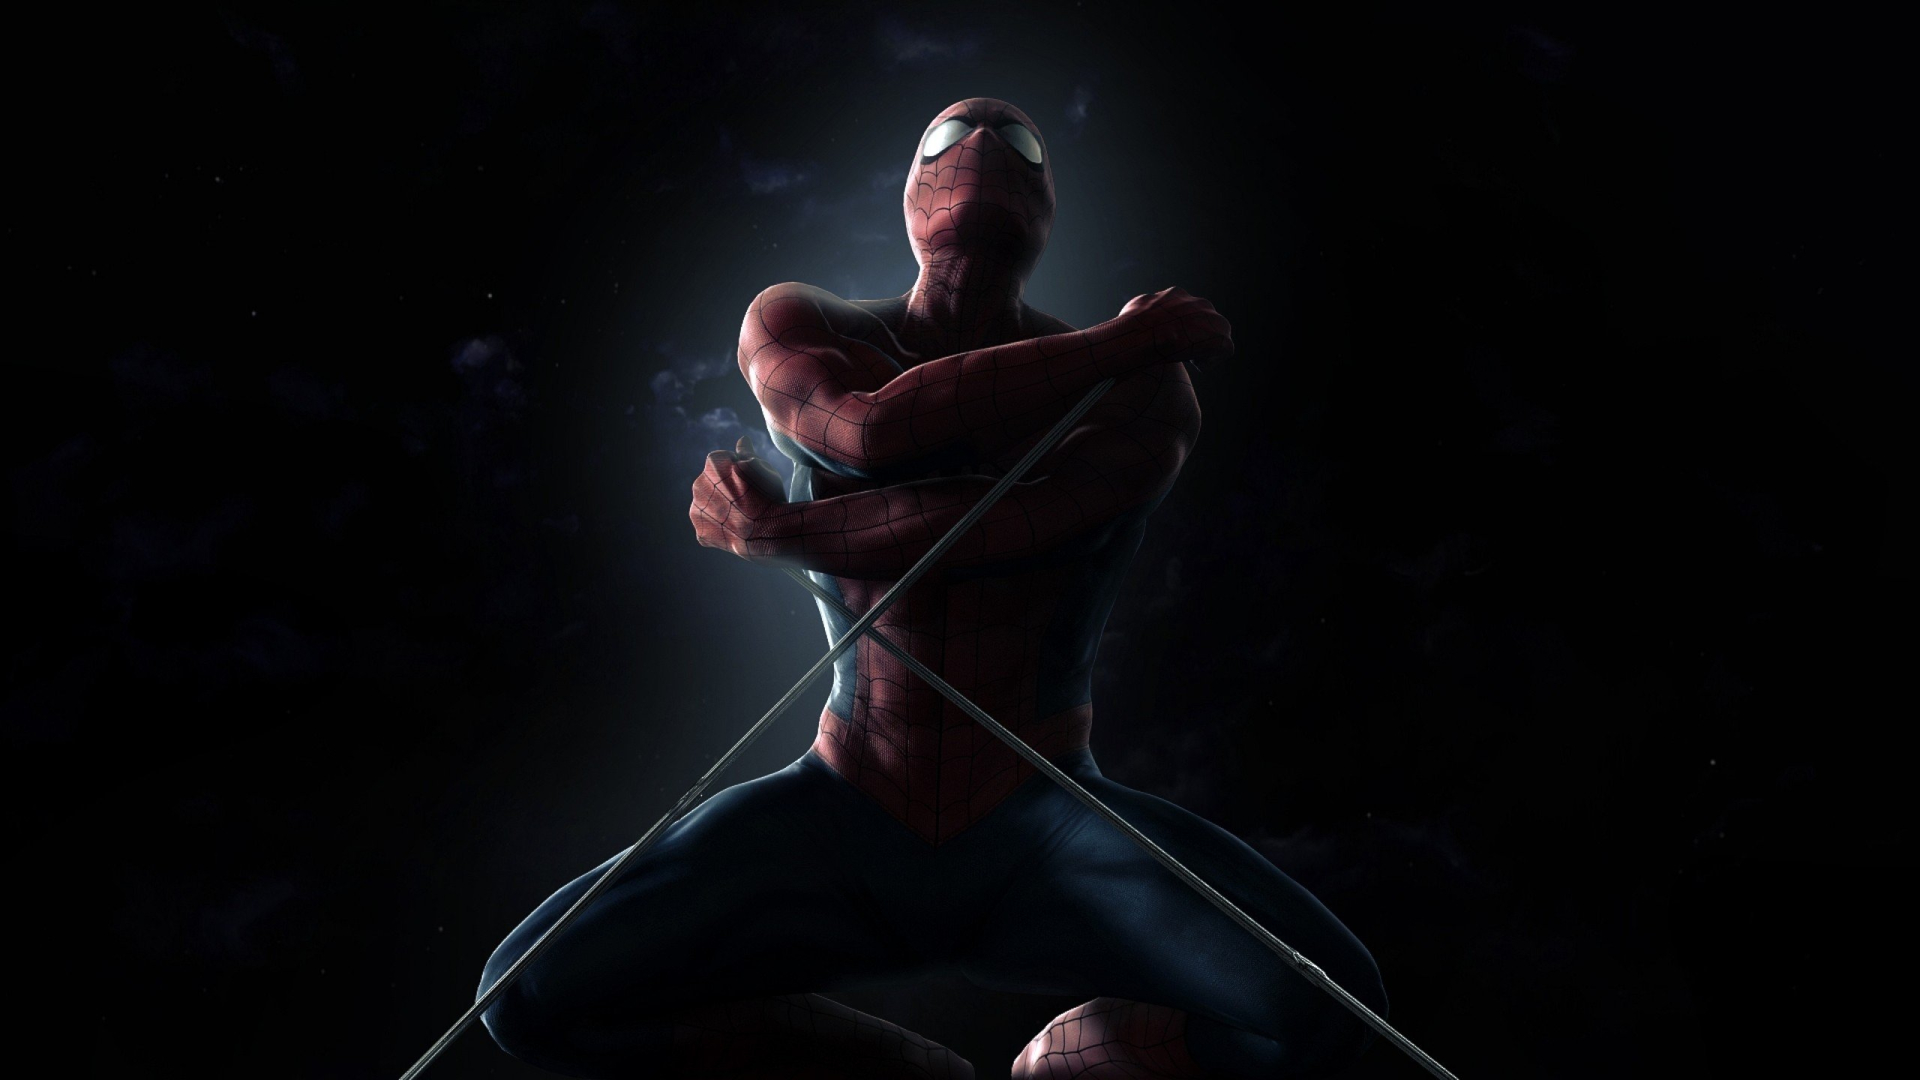 the amazing spider-man wallpaper and background image | 1366x768